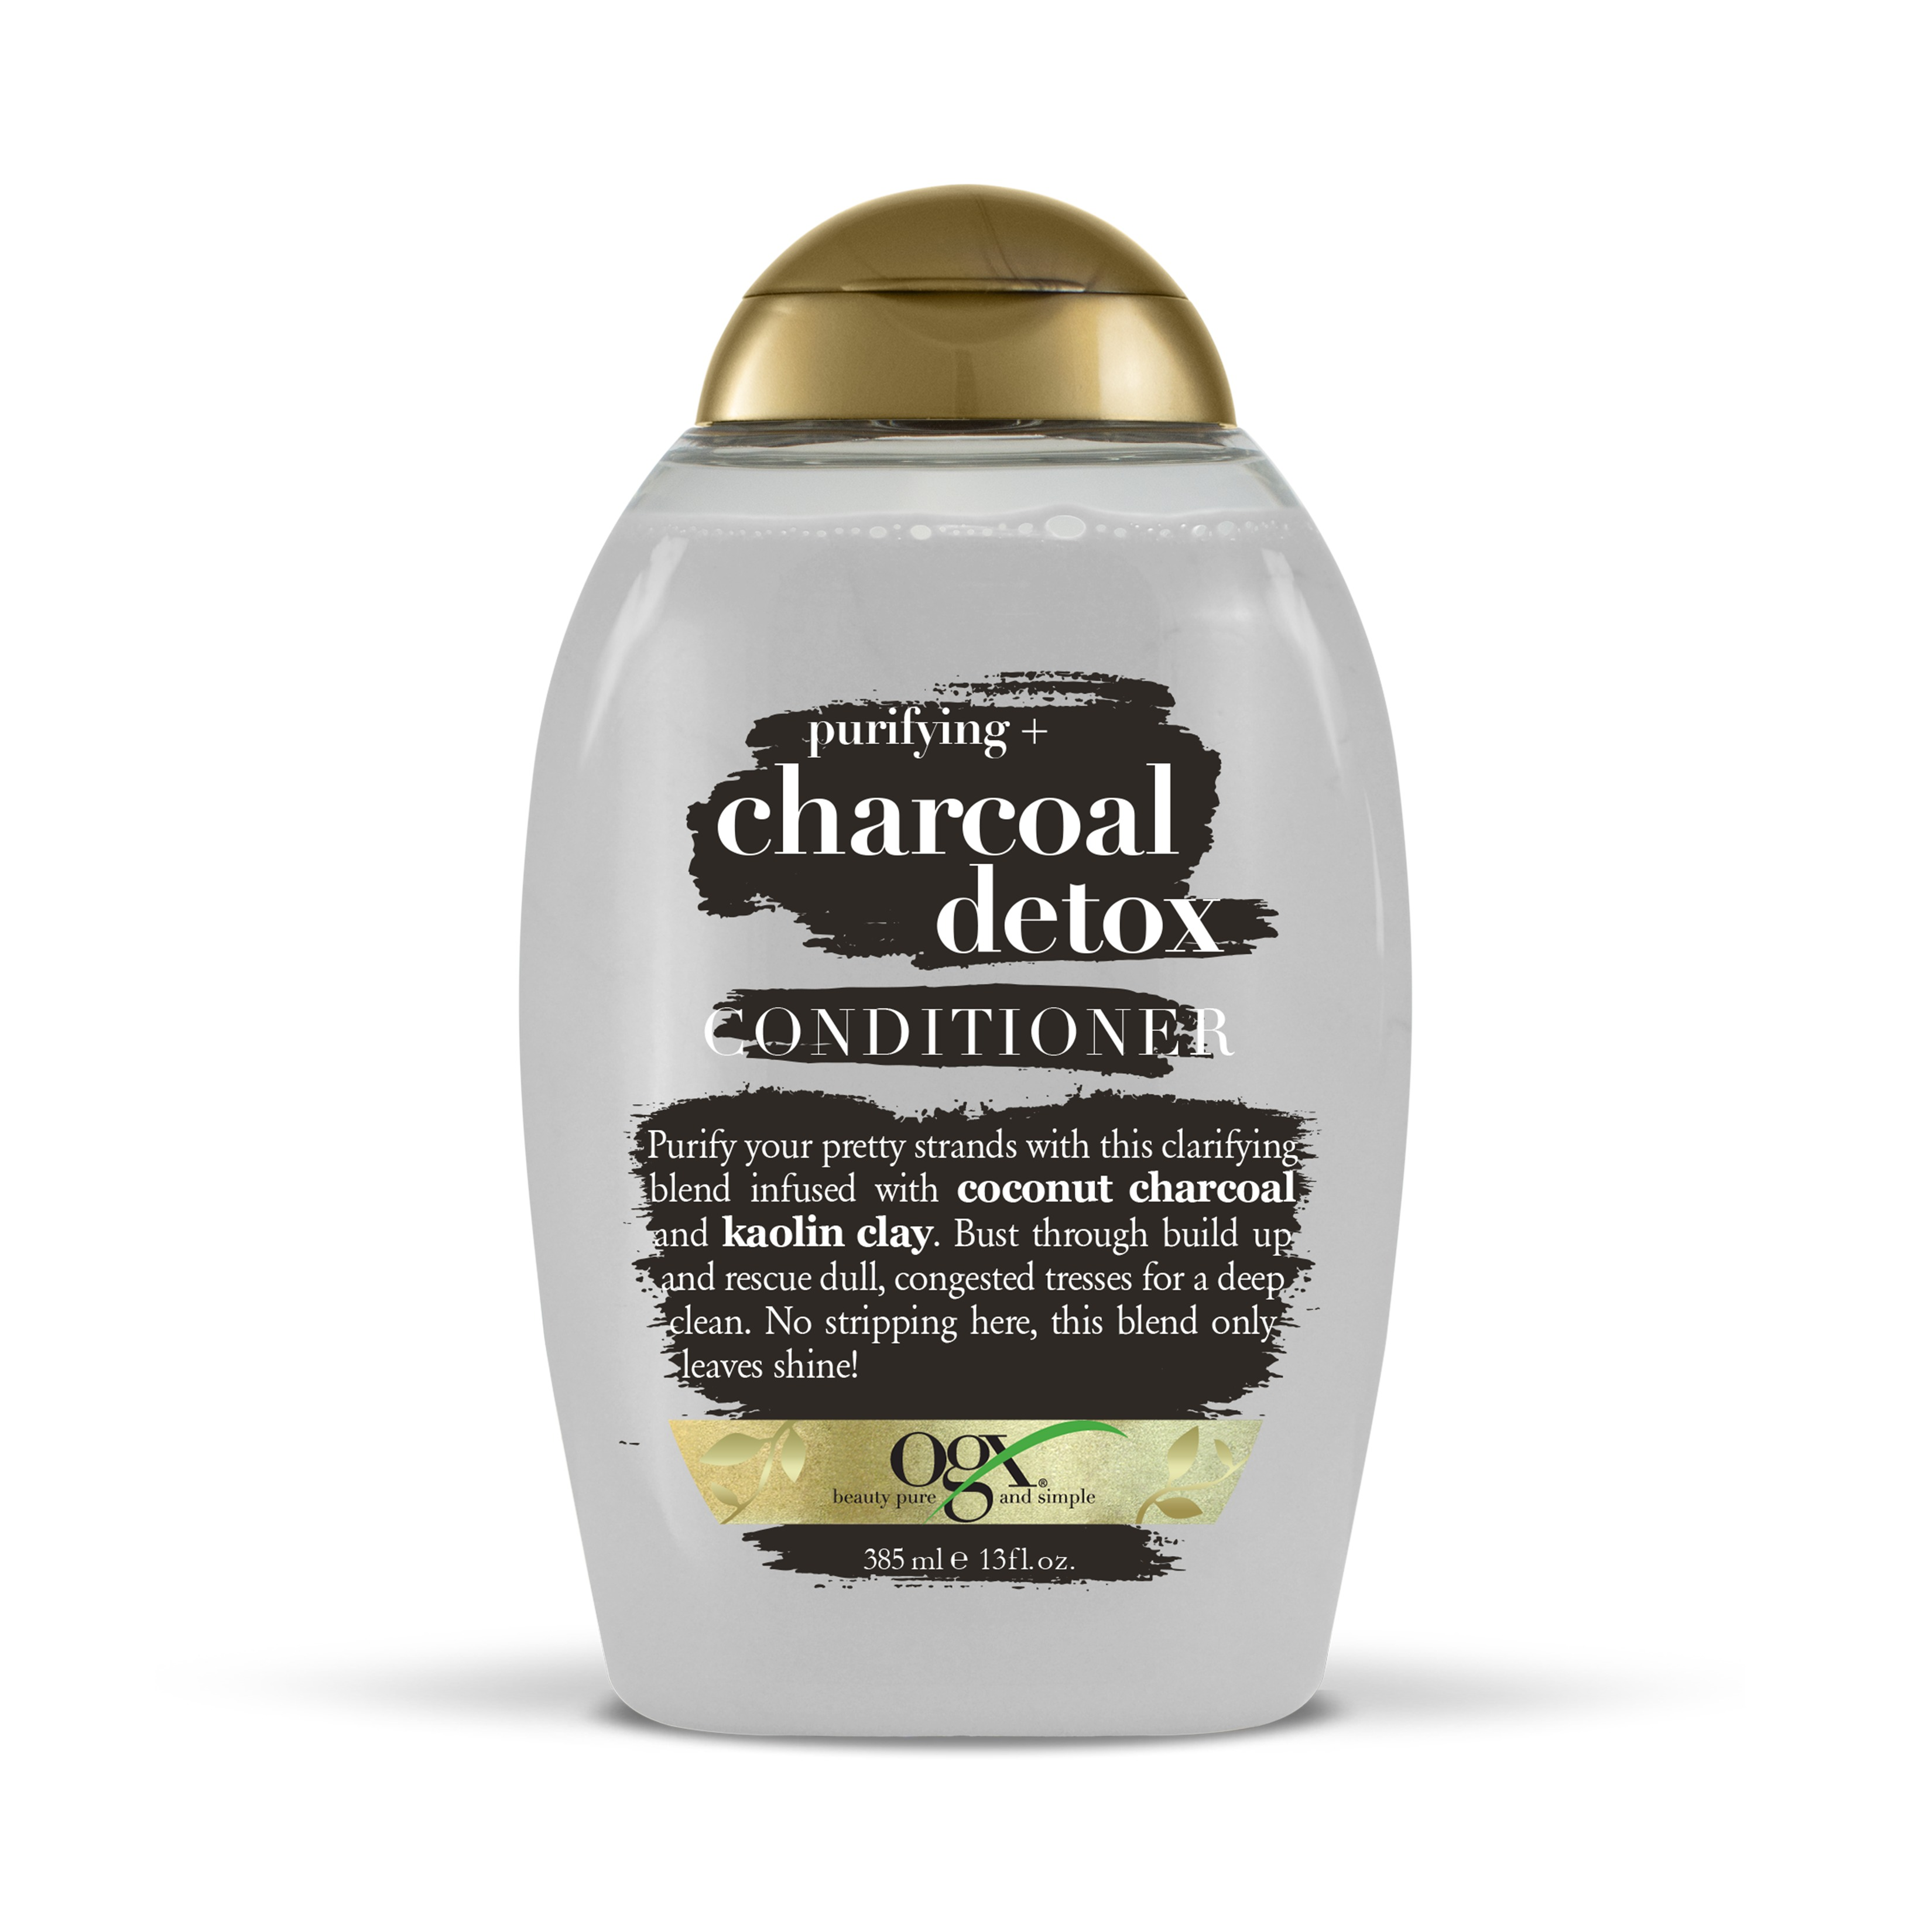 OGX Purifying + Charcoal Detox Conditioner, 13 oz